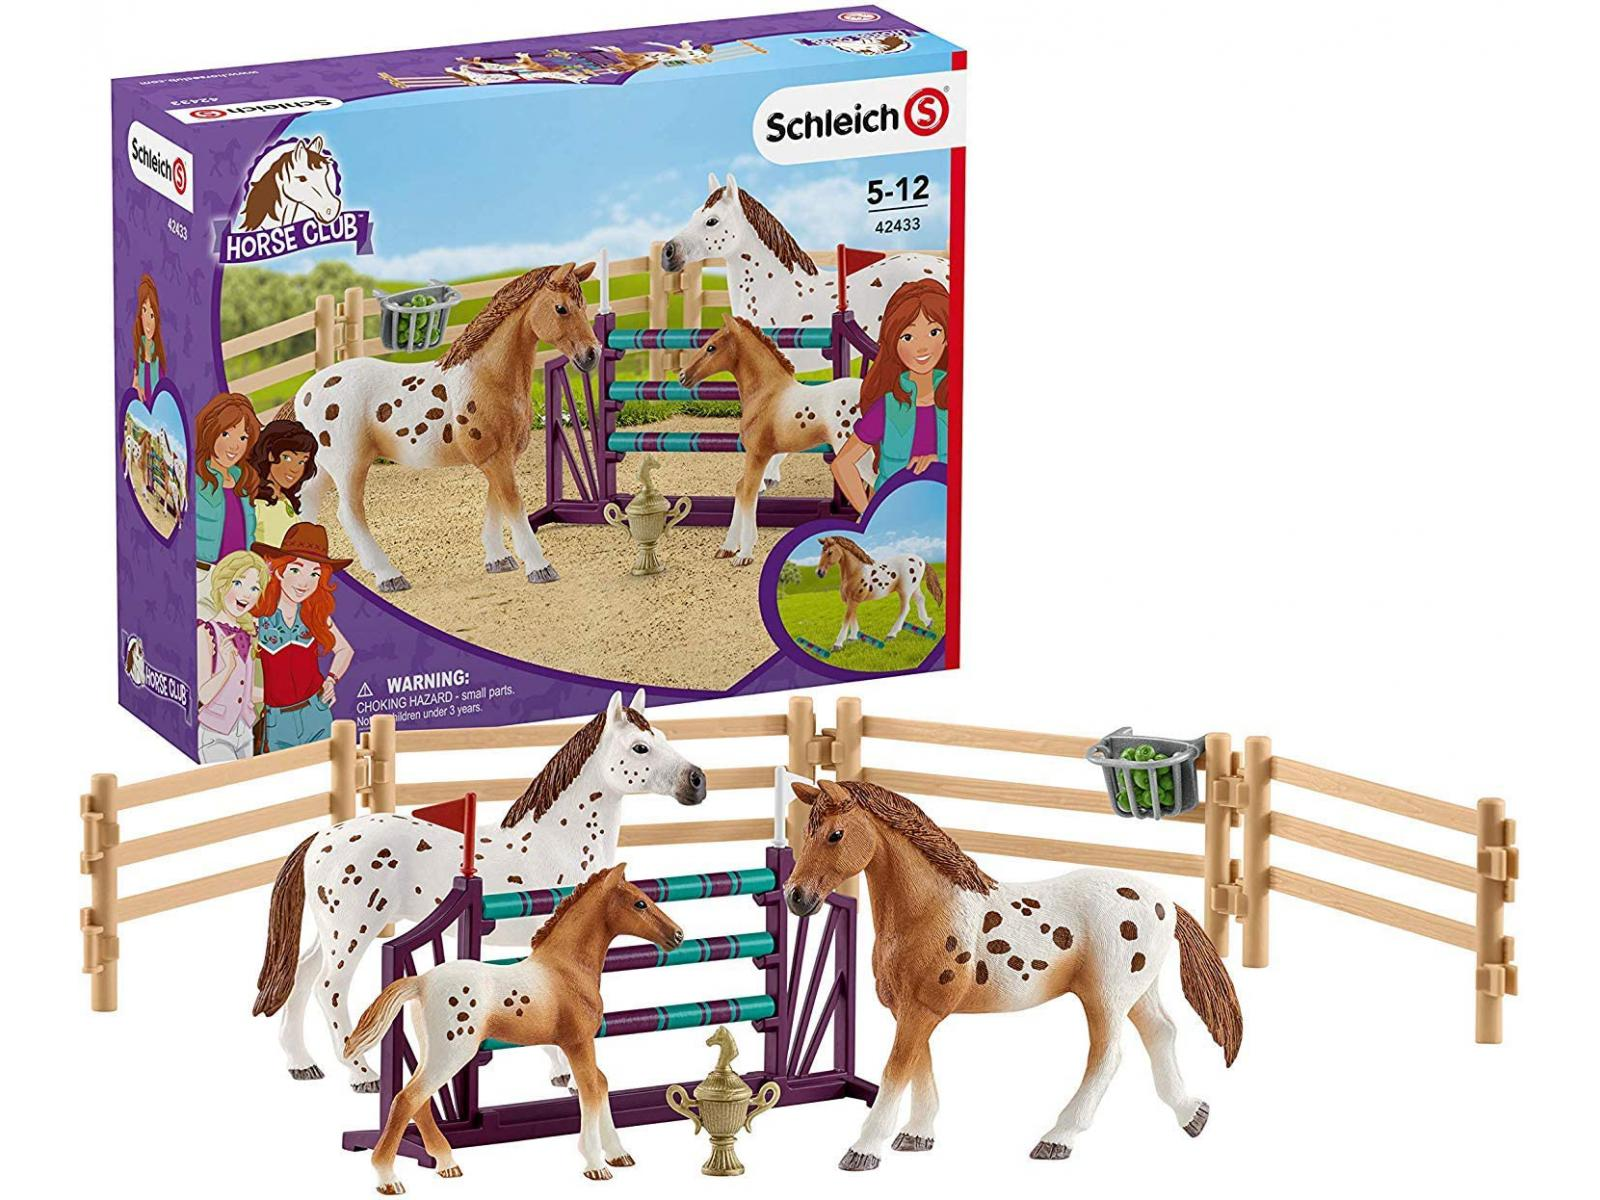 schleich l entra nement au concours d 39 horse club lisa 24 5 cm x 5 2 cm x 19 cm. Black Bedroom Furniture Sets. Home Design Ideas